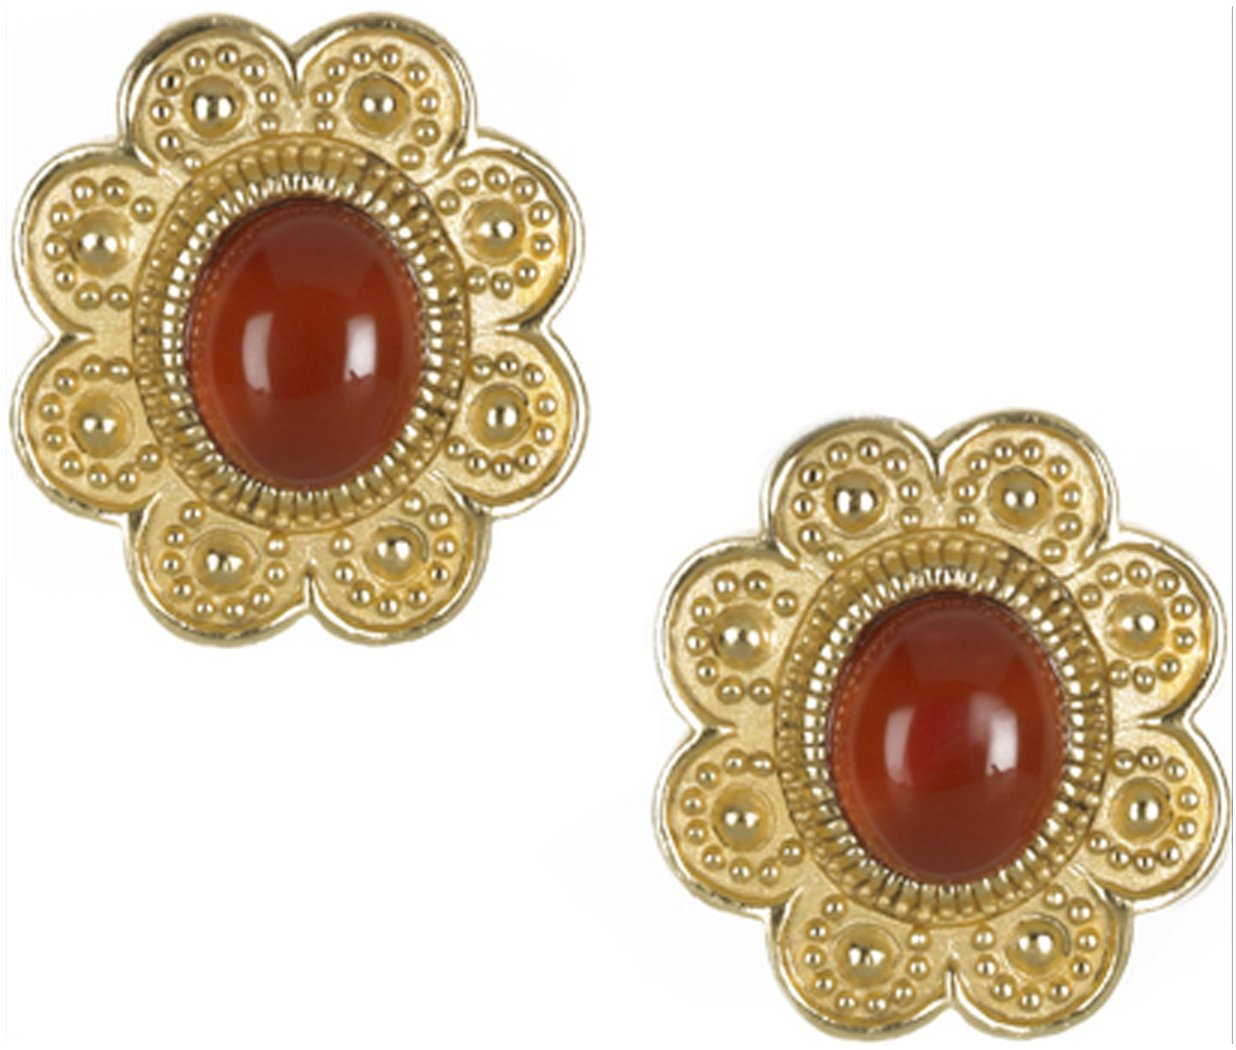 Sale - Museum Reproduction of Egyptian Carnelian CLIP Earrings, From Our Museum Store Reproductions